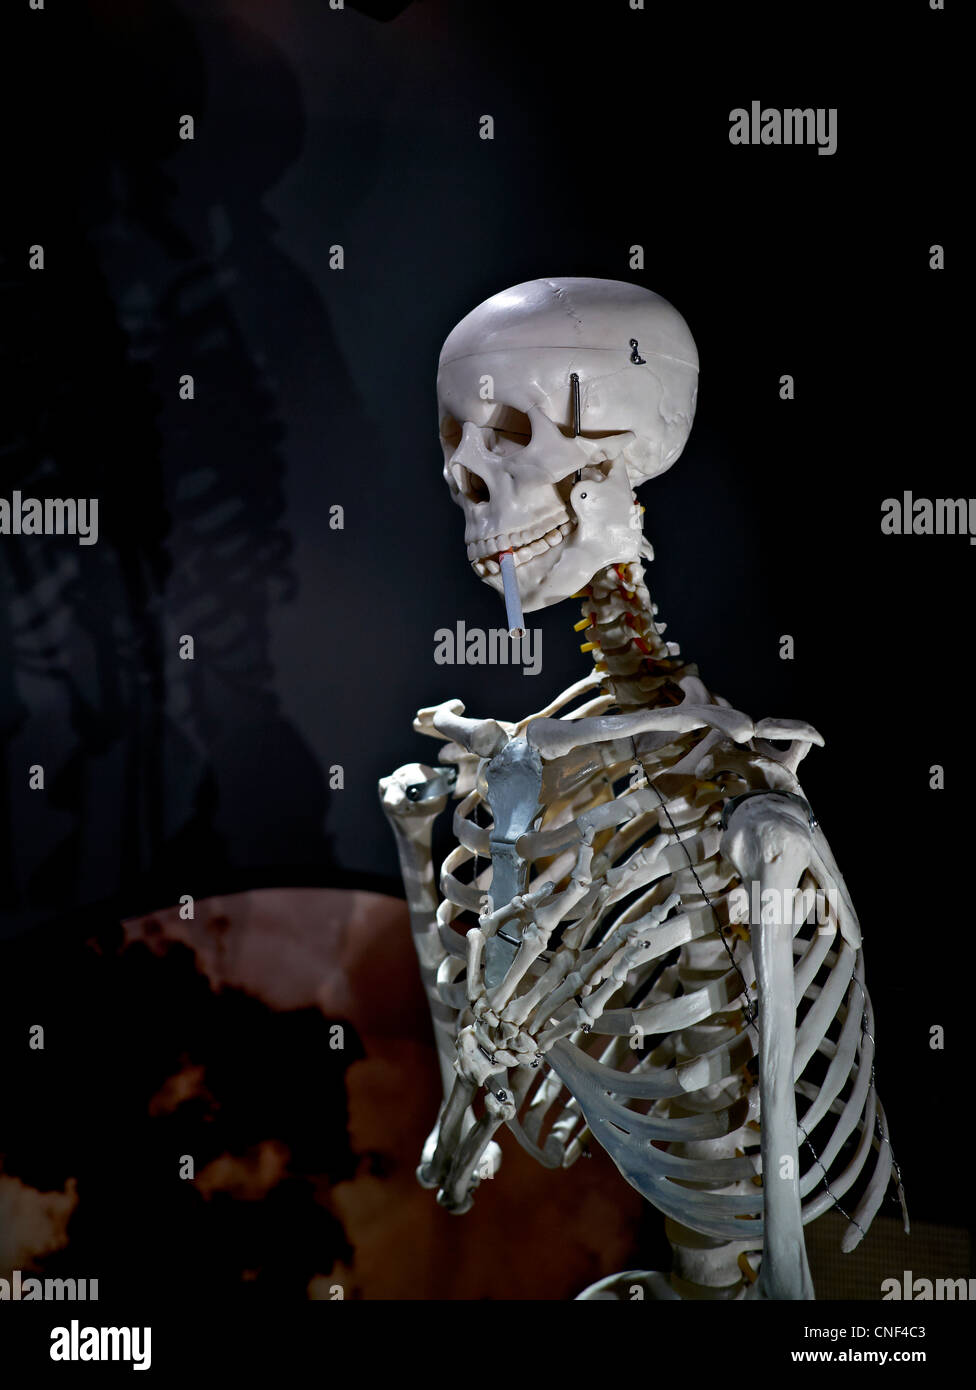 Human skeleton with a cigarette. Concept of the dangers of smoking. - Stock Image